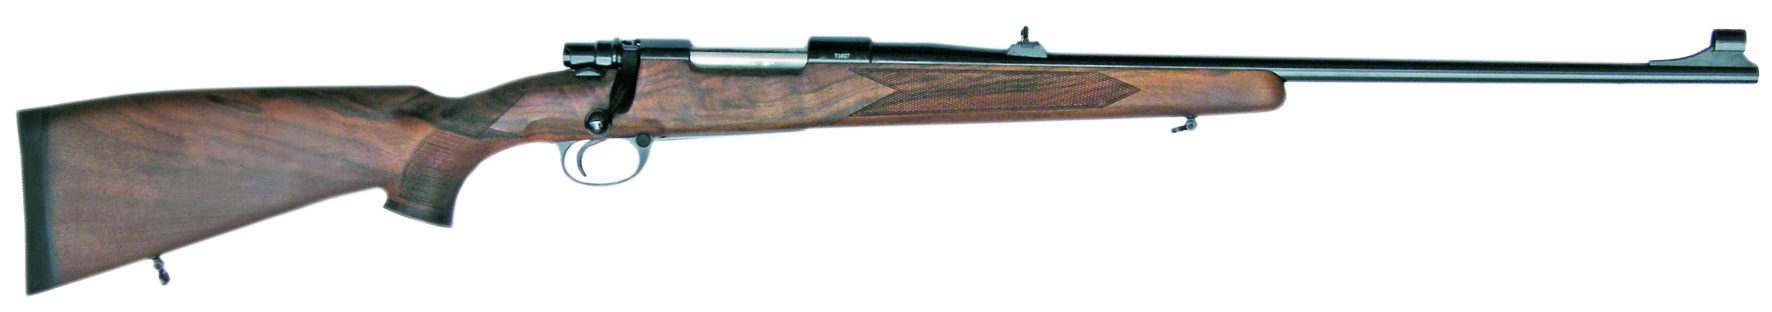 Zastava M70 Sporting rifle